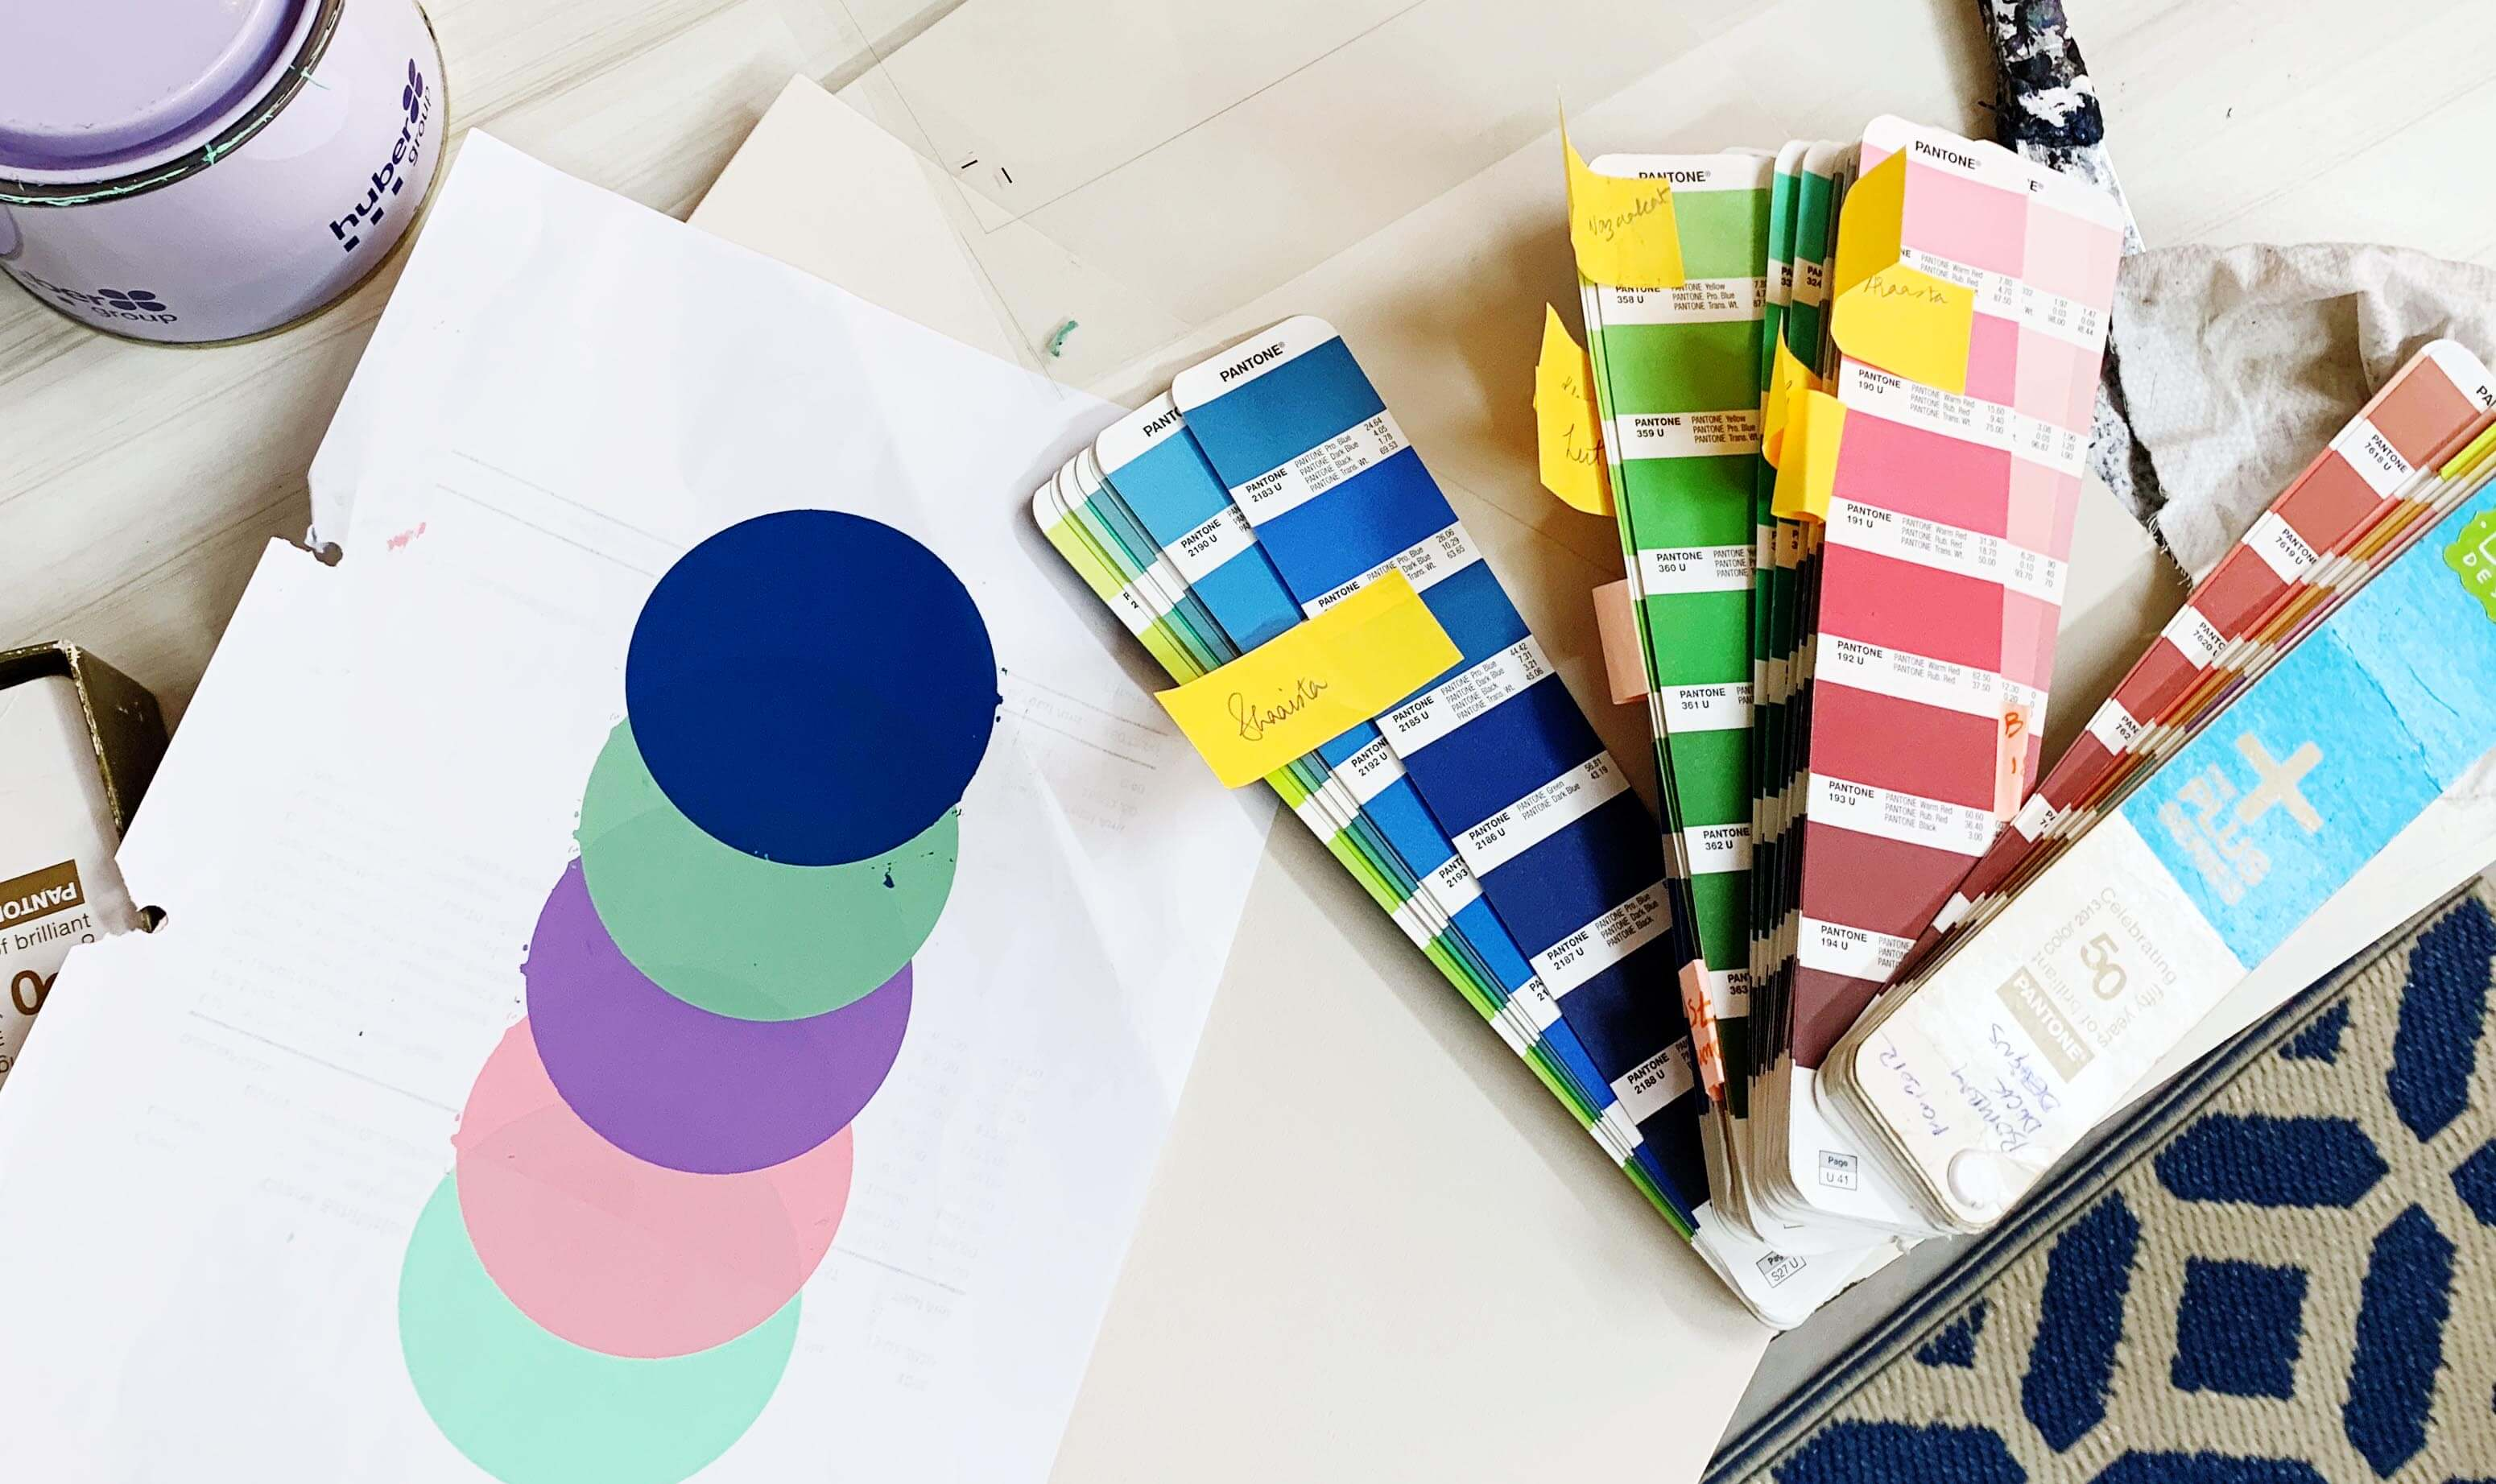 Pantone swatch cards lying on a white table next to a paper with five coloured circles printed on it